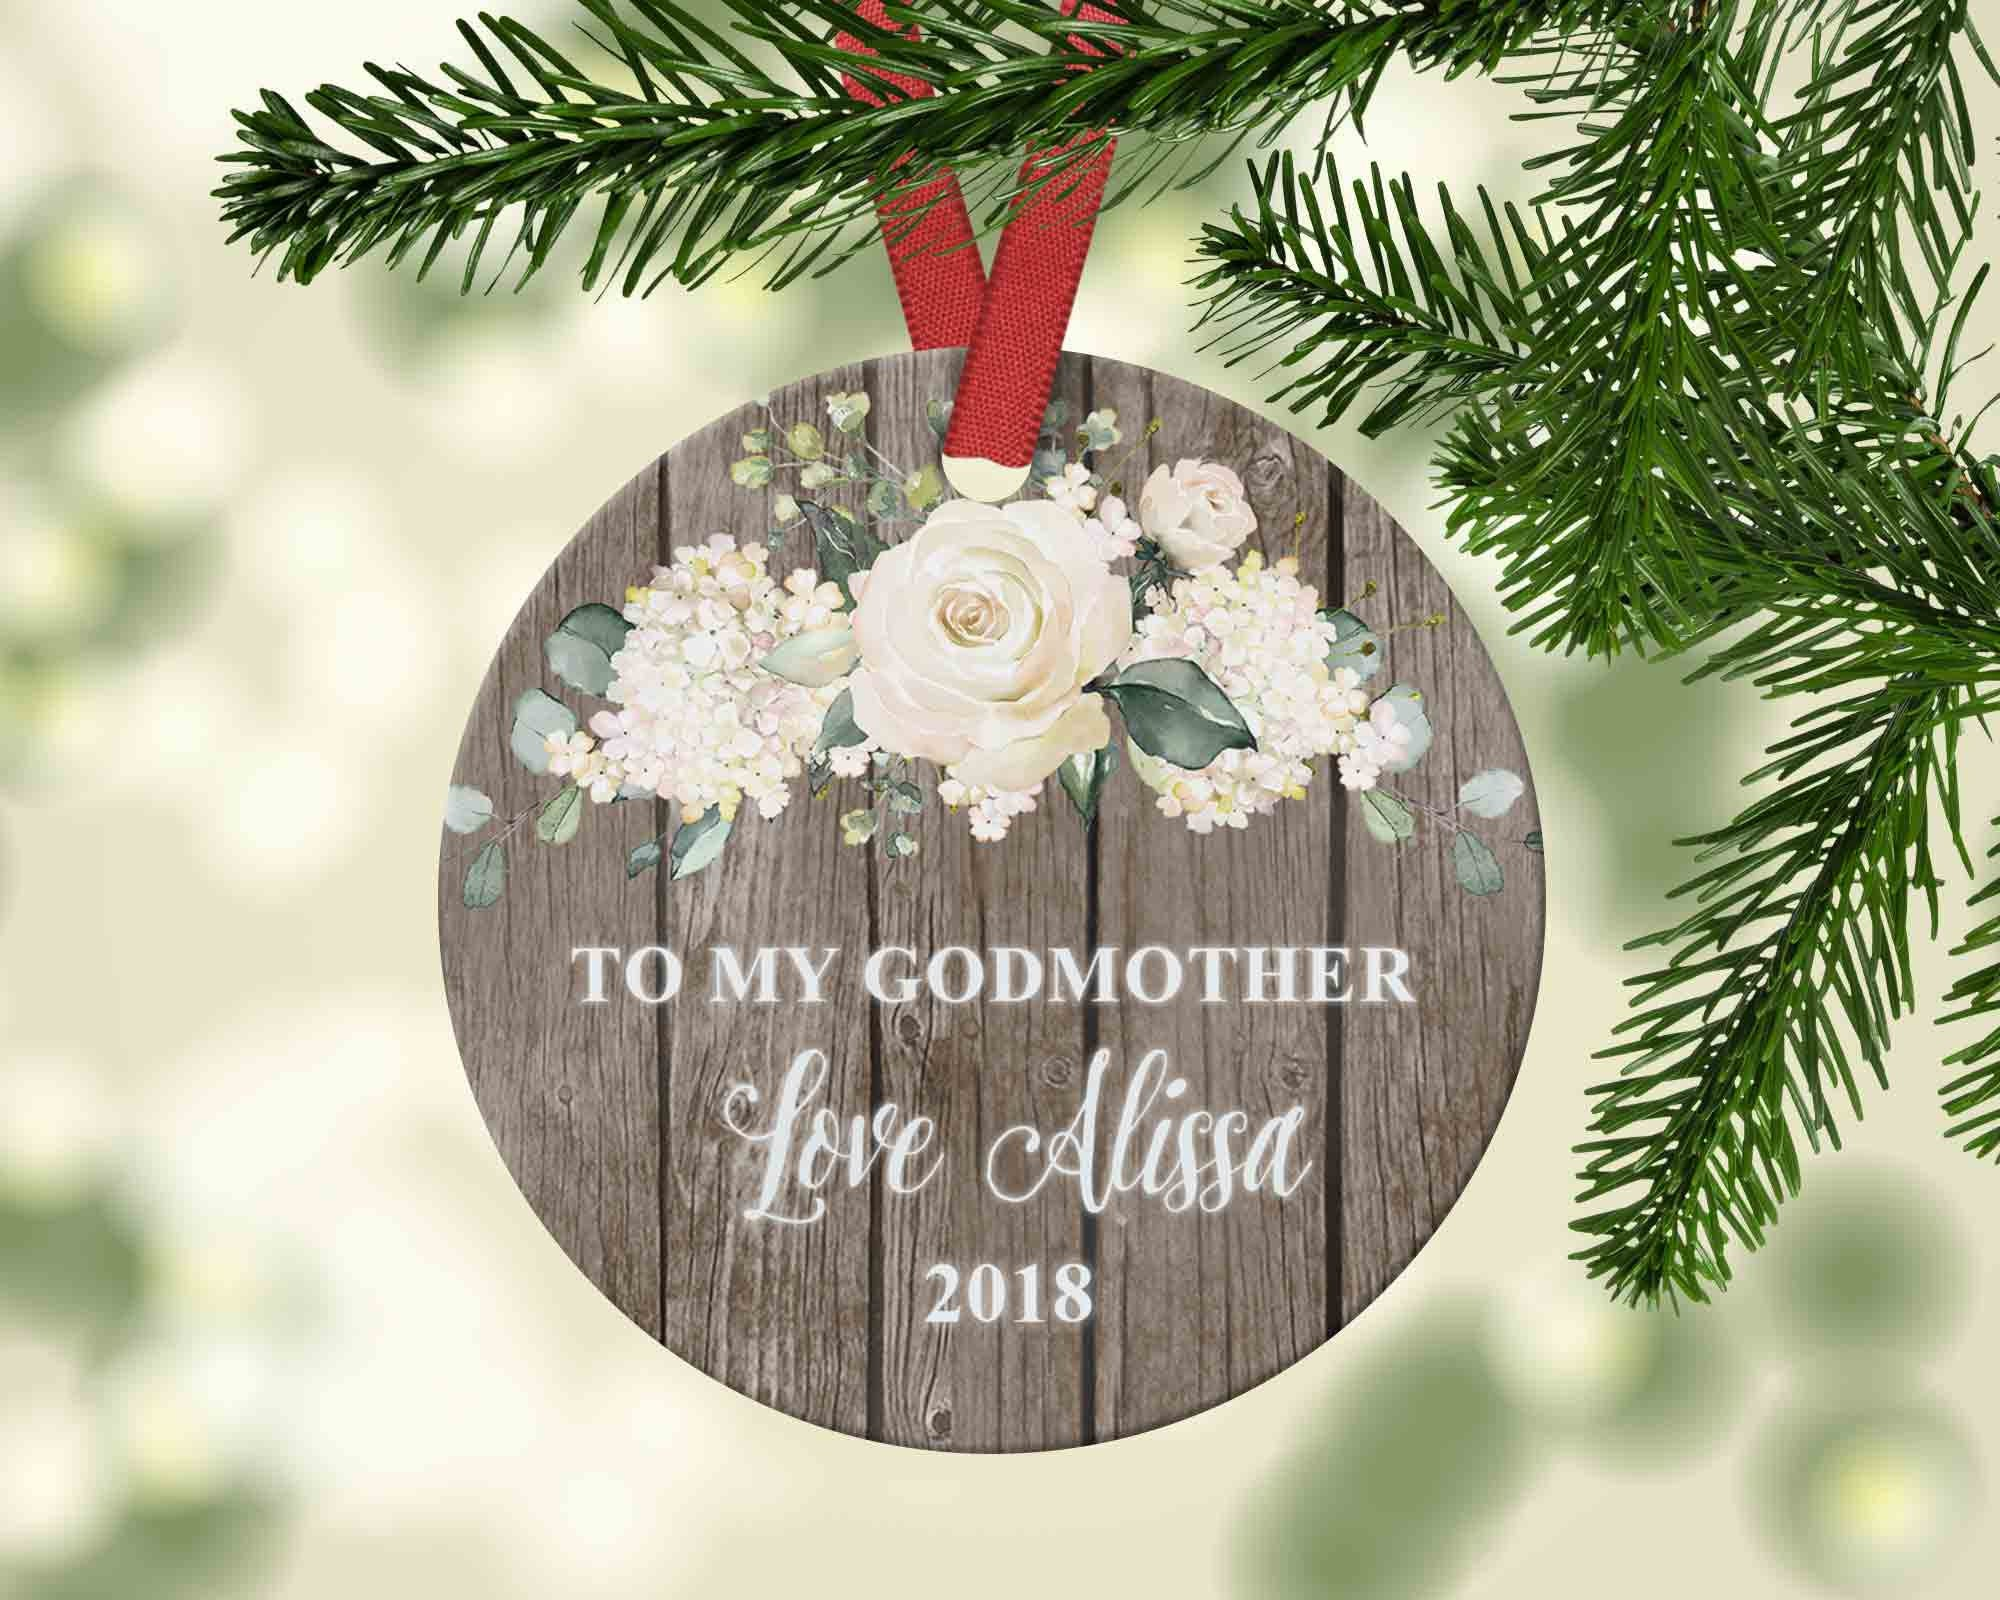 Personalized Godmother Christmas Ornament - Rustic Floral Ornament - Ornament